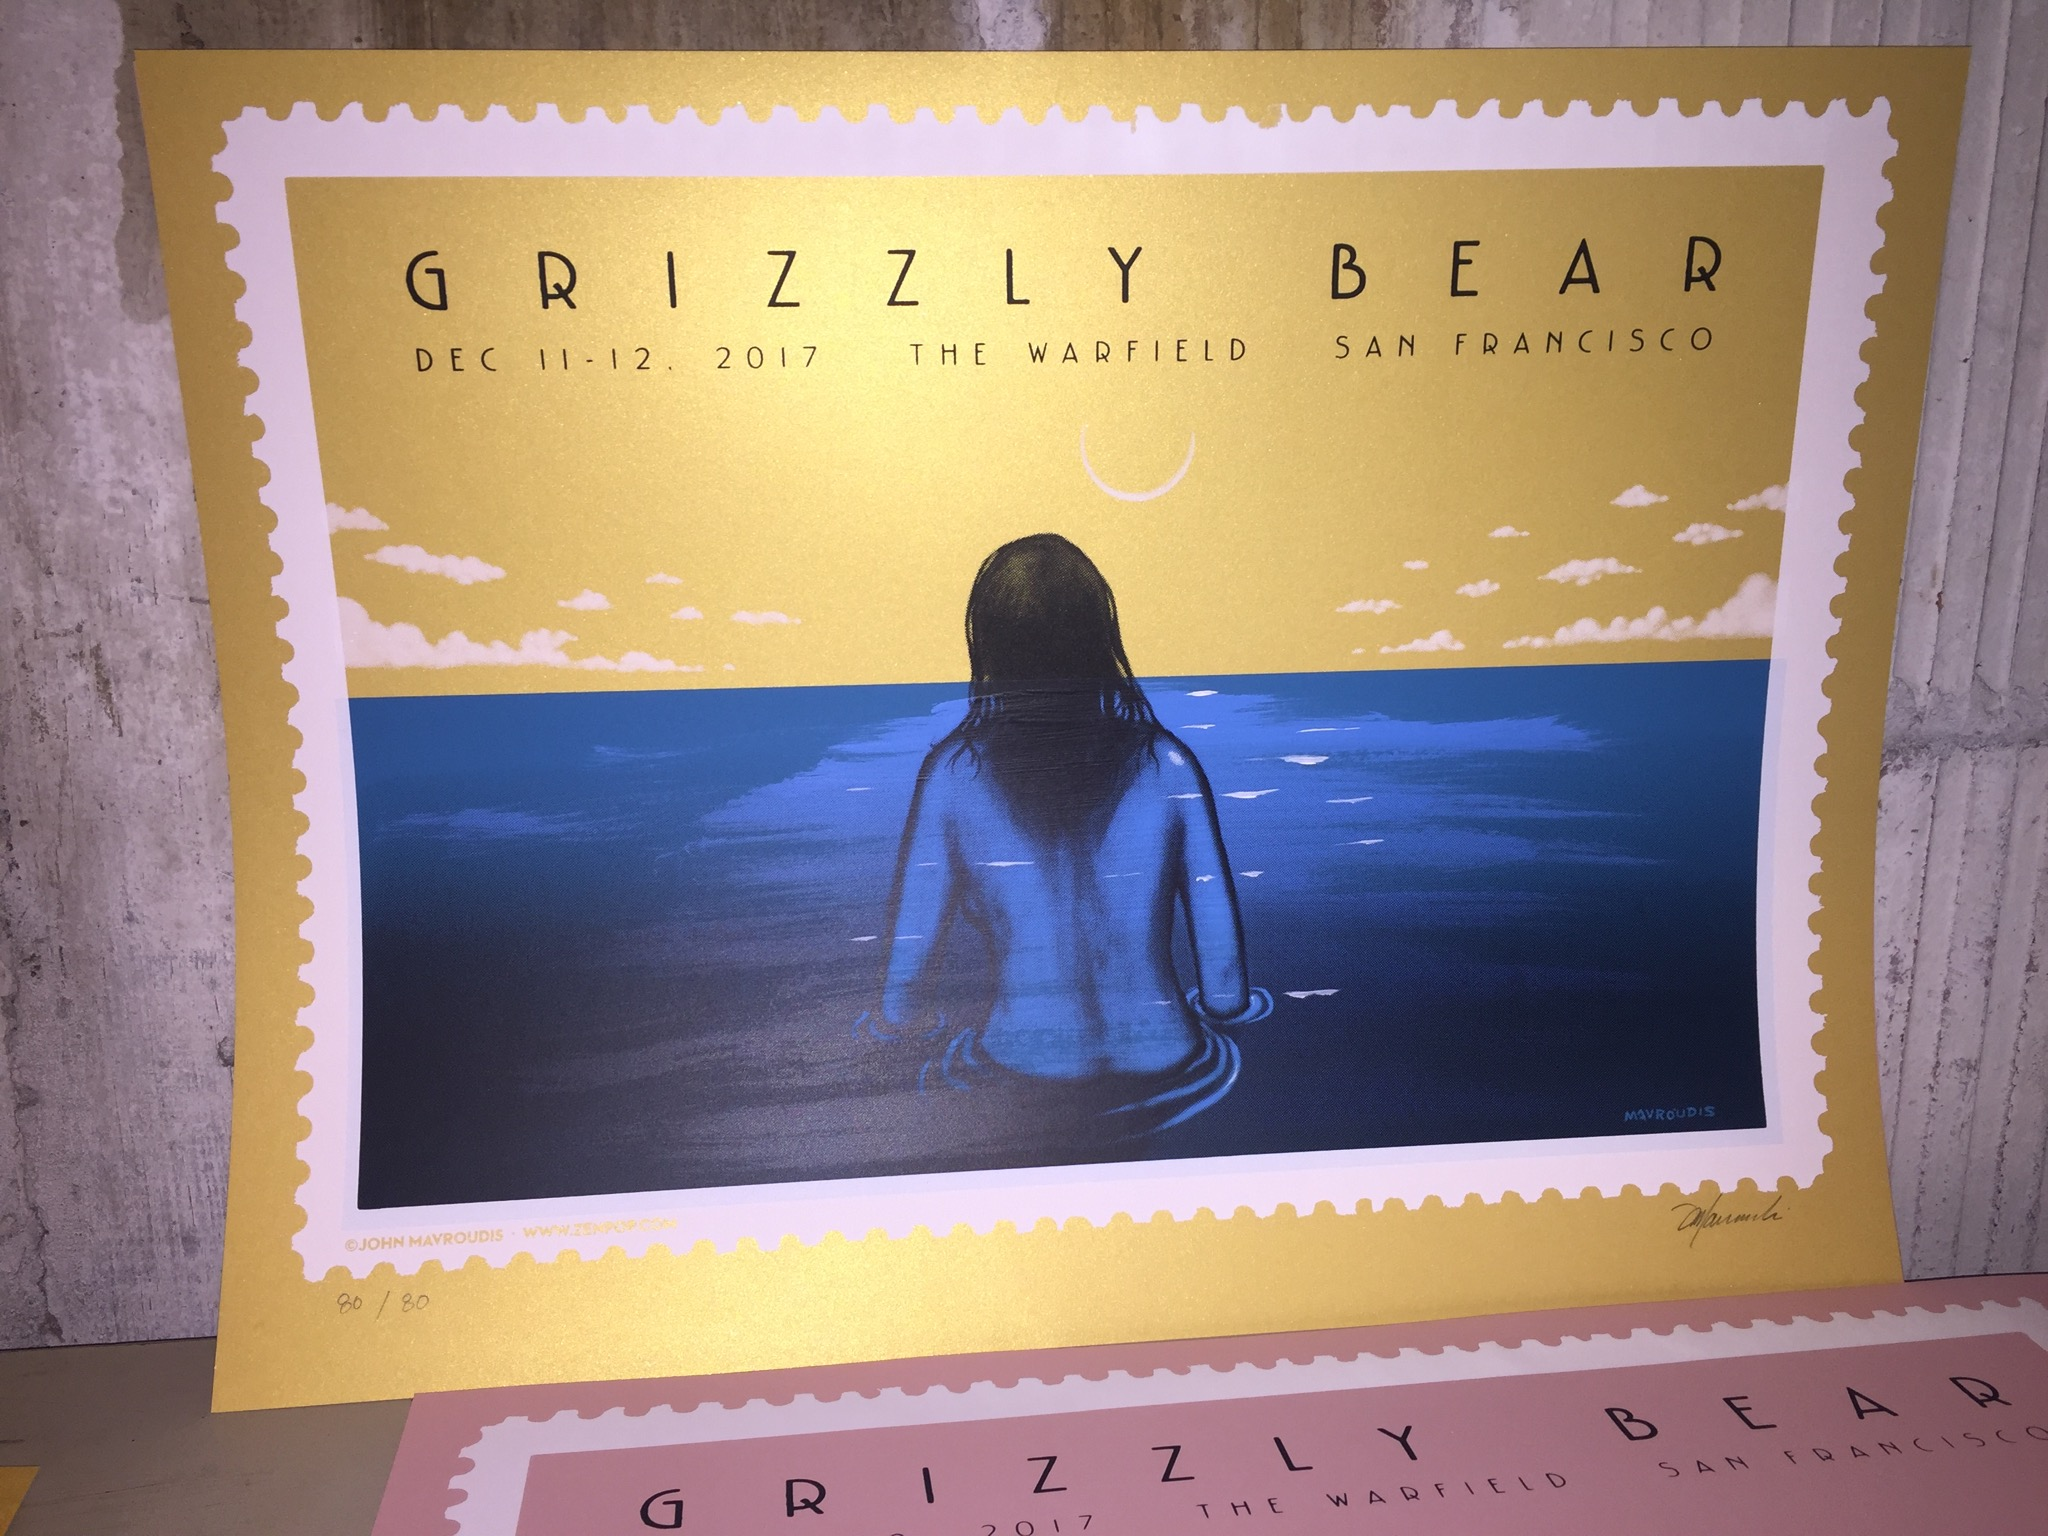 Grizzly Bear - Gold Metallic